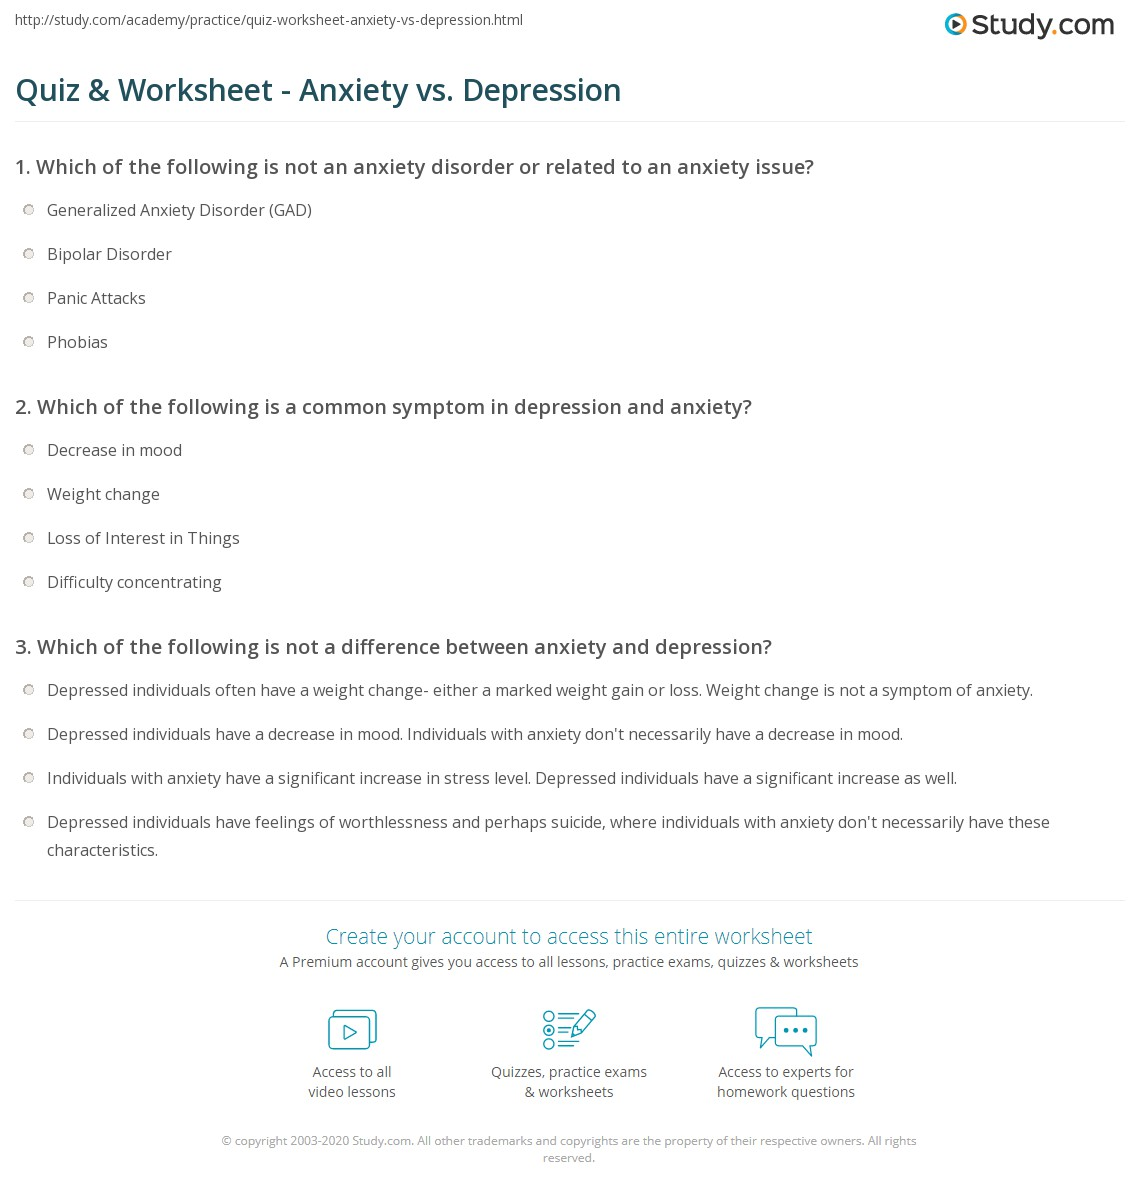 Quiz & Worksheet - Anxiety vs. Depression | Study.com